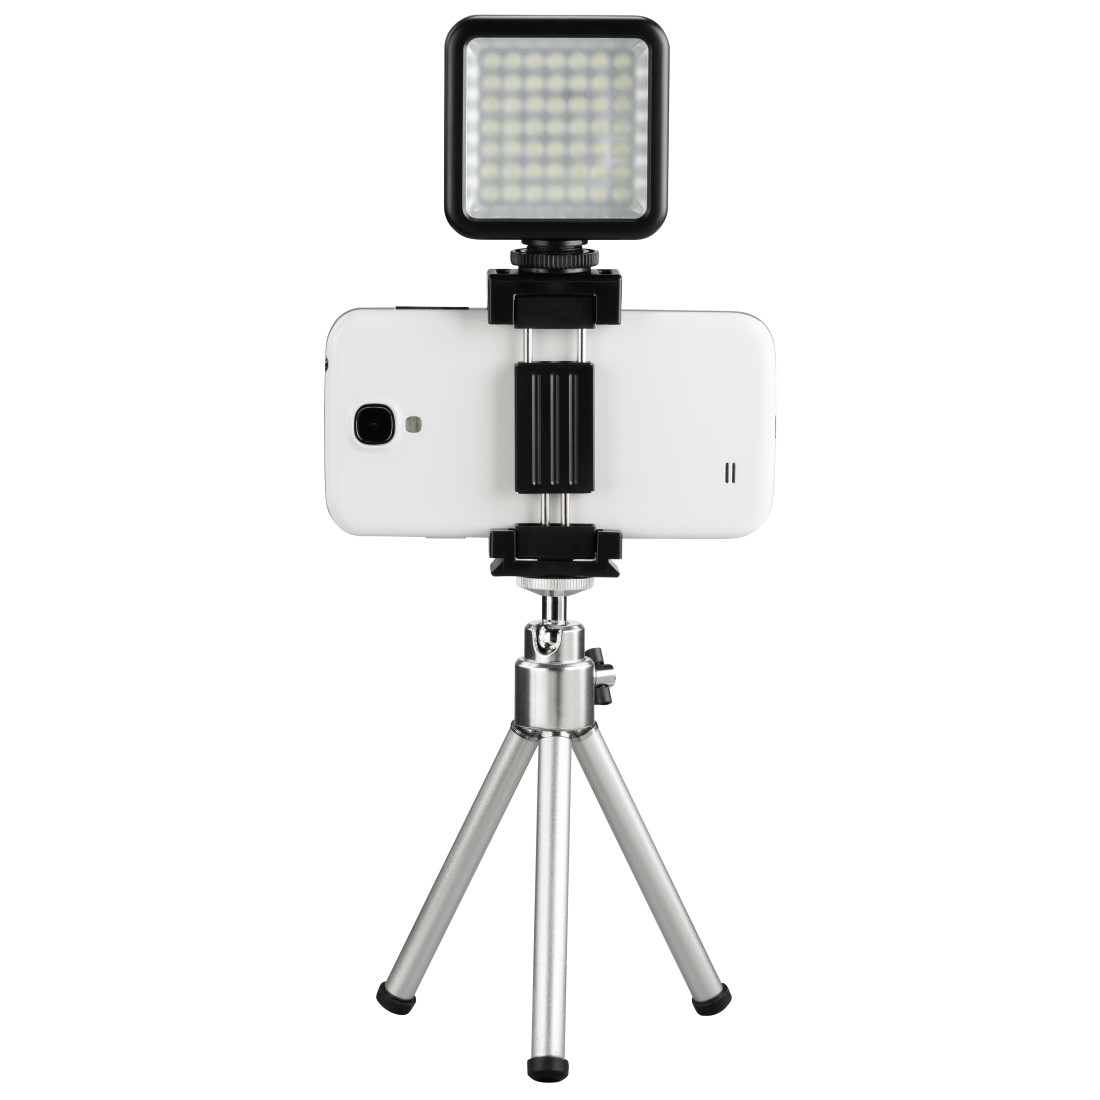 "awx3 High-Res Appliance 3 - Hama, ""49 BD"" LED Lights for Smartphone, Photo and Video Cameras"